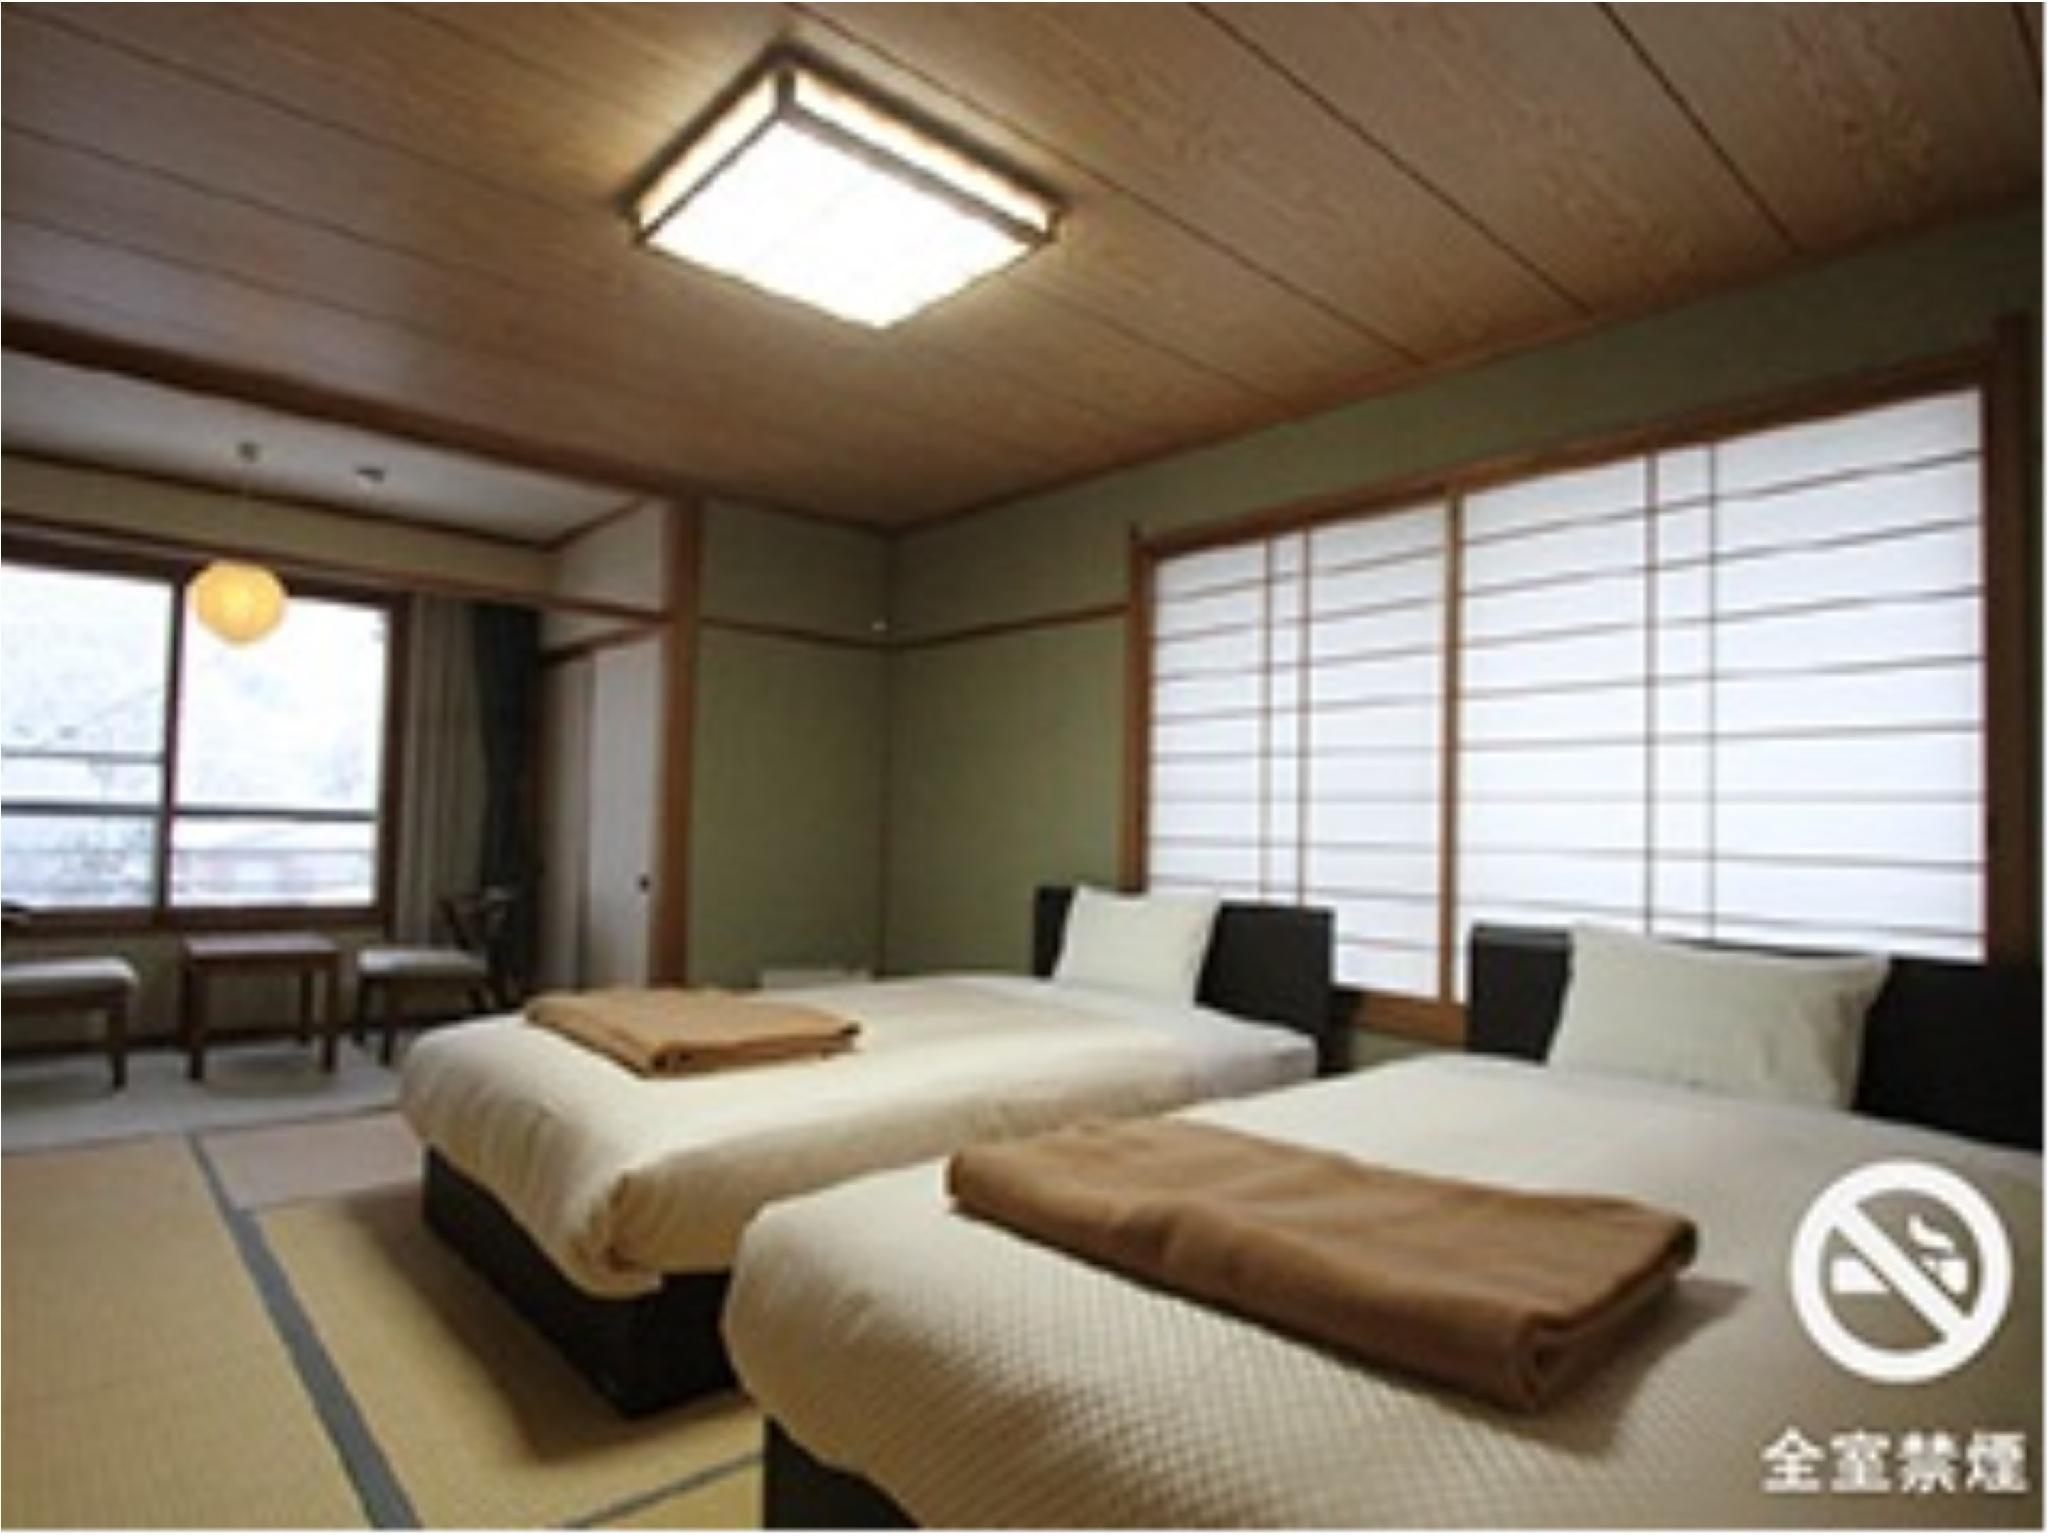 和式双人双床房(2张双人中床) (Japanese-style Twin Room (2 Semi-double Beds))